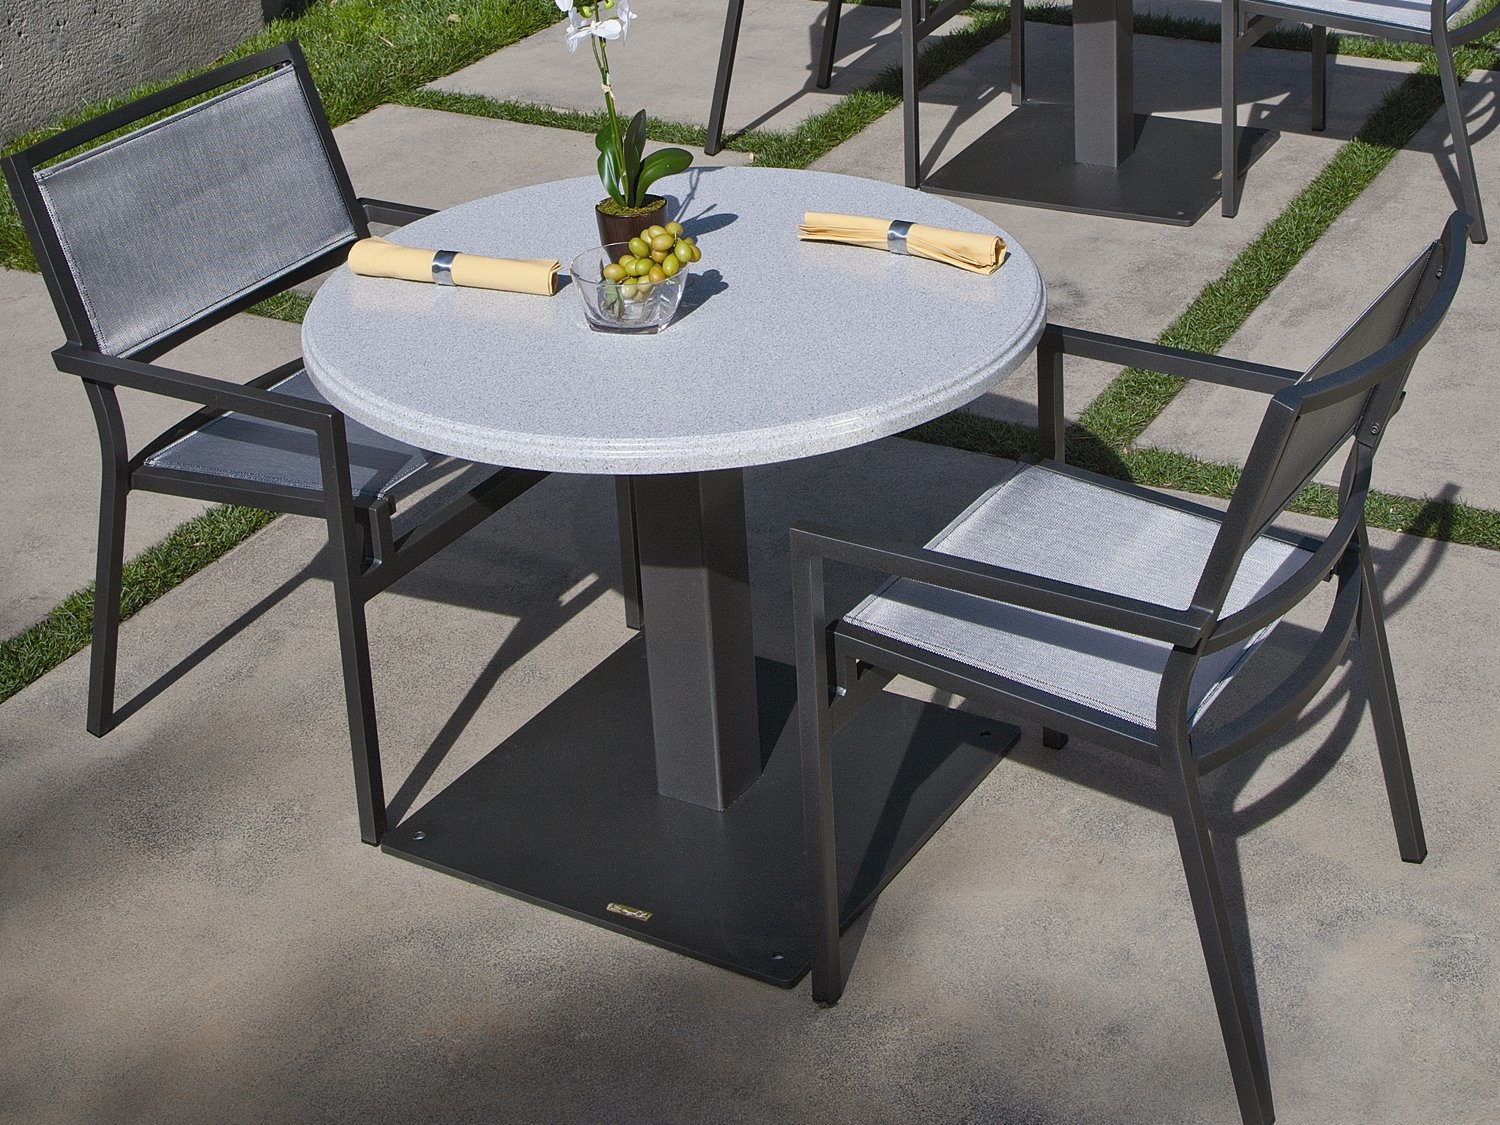 Tropitone | Cast Aluminum Patio Furniture Brands | Vintage Tropitone Patio Furniture